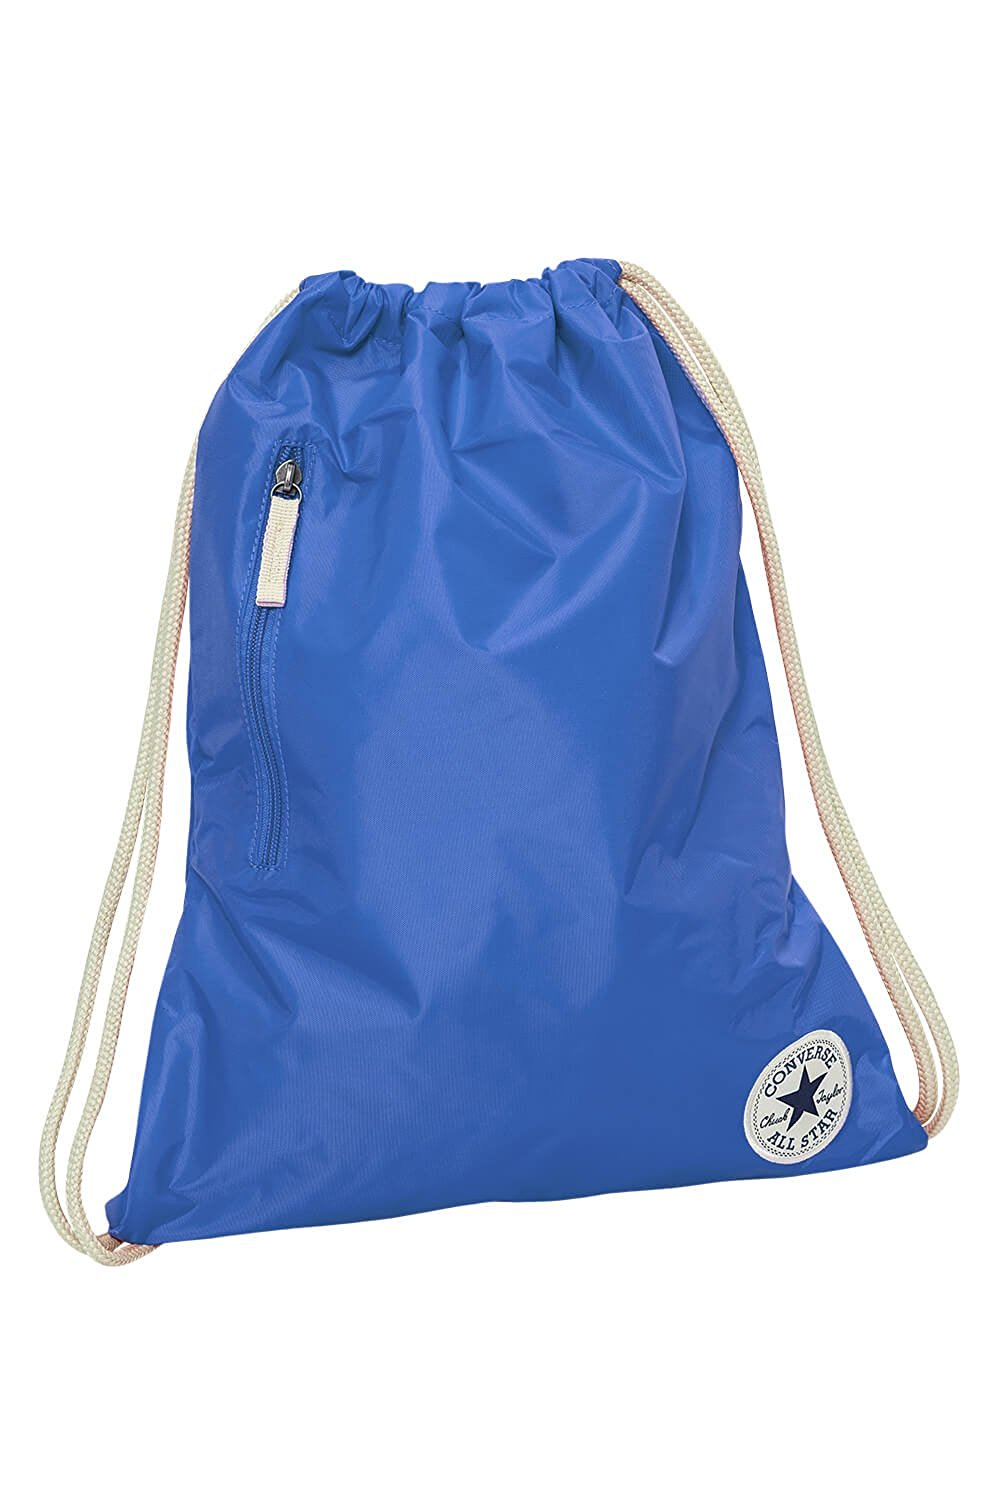 b5c6efdfe80 Get Quotations · Converse Core Poly Cinch Gym Bag - Oxygen Blue